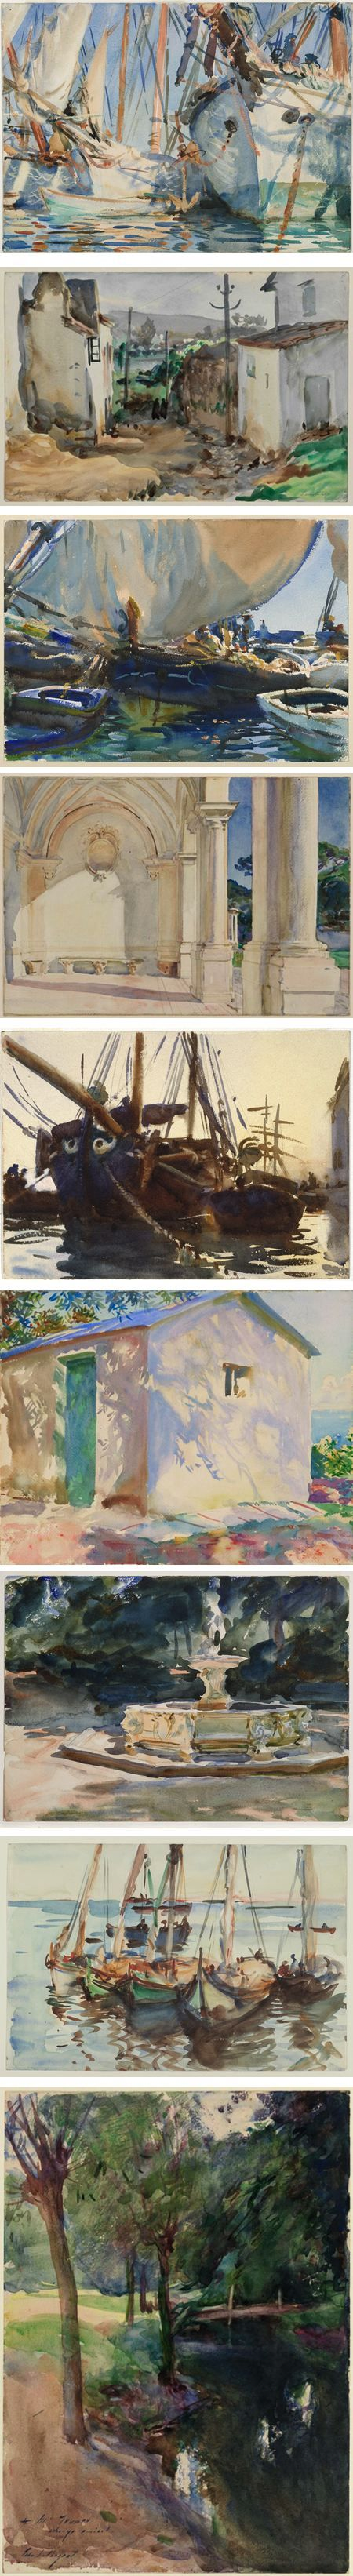 Watercolor art galleries in houston - Find This Pin And More On Water Color Painting